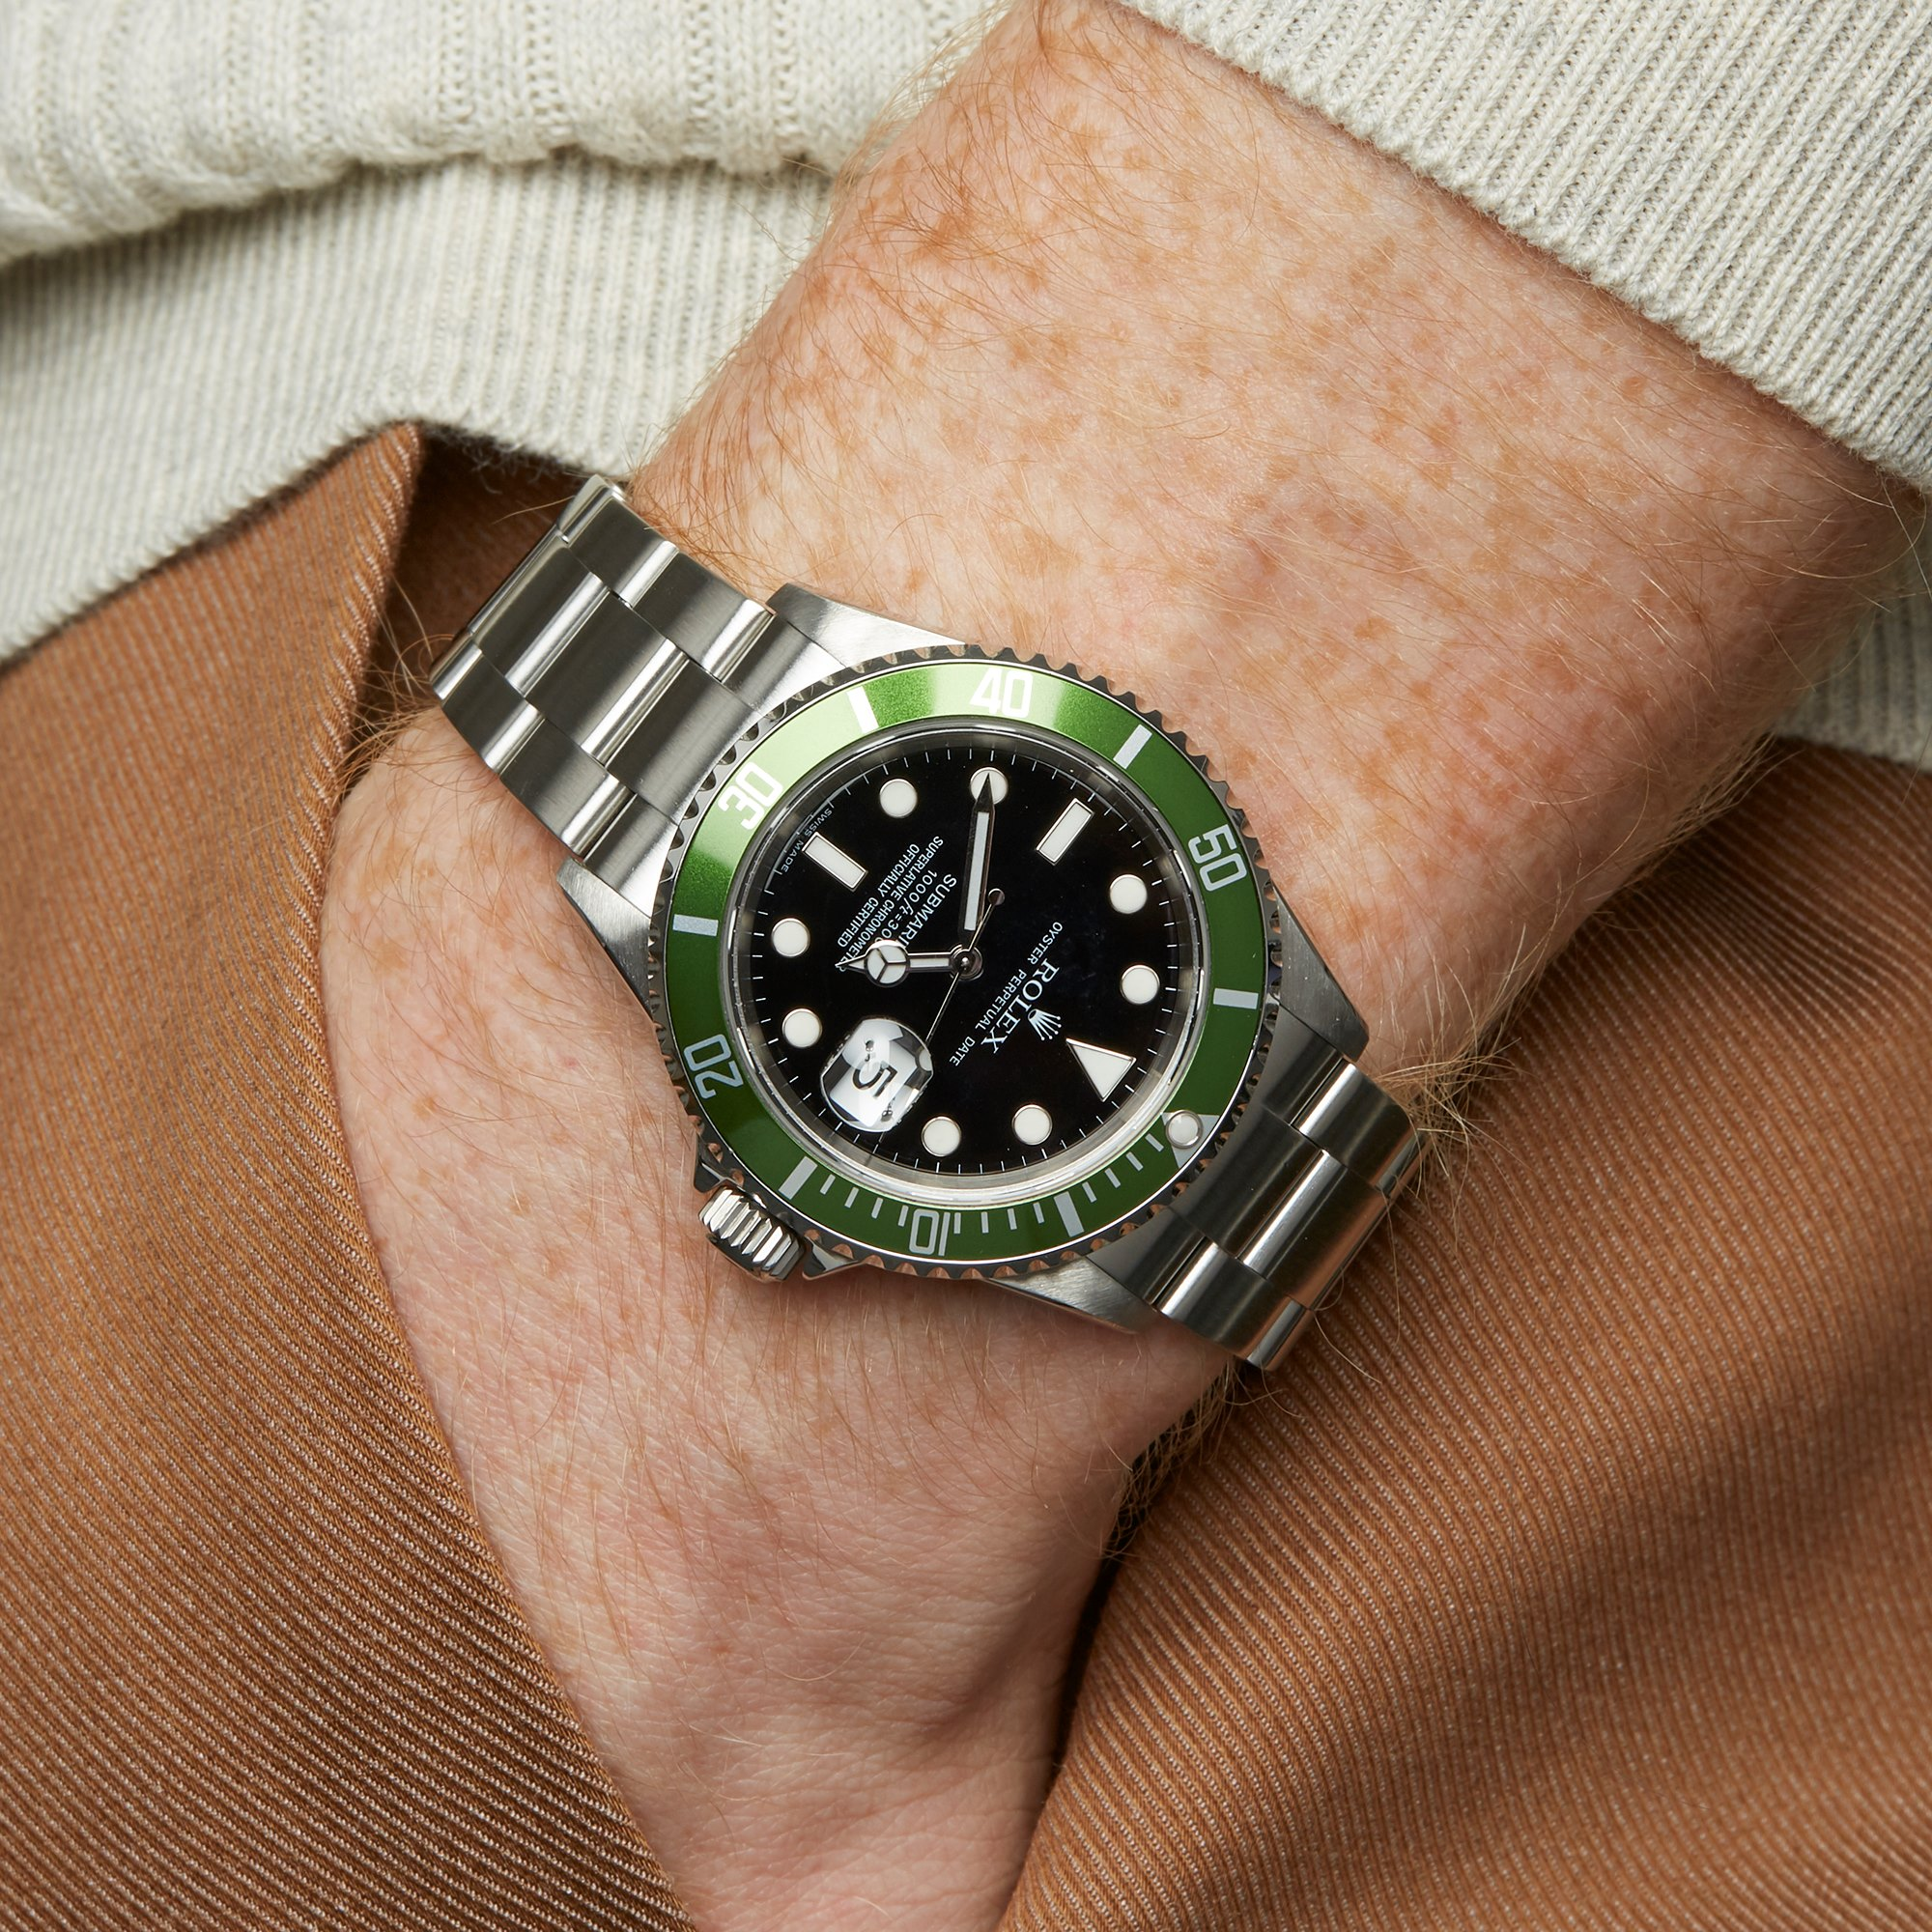 Rolex Submariner Kermit Stainless Steel 16610LV